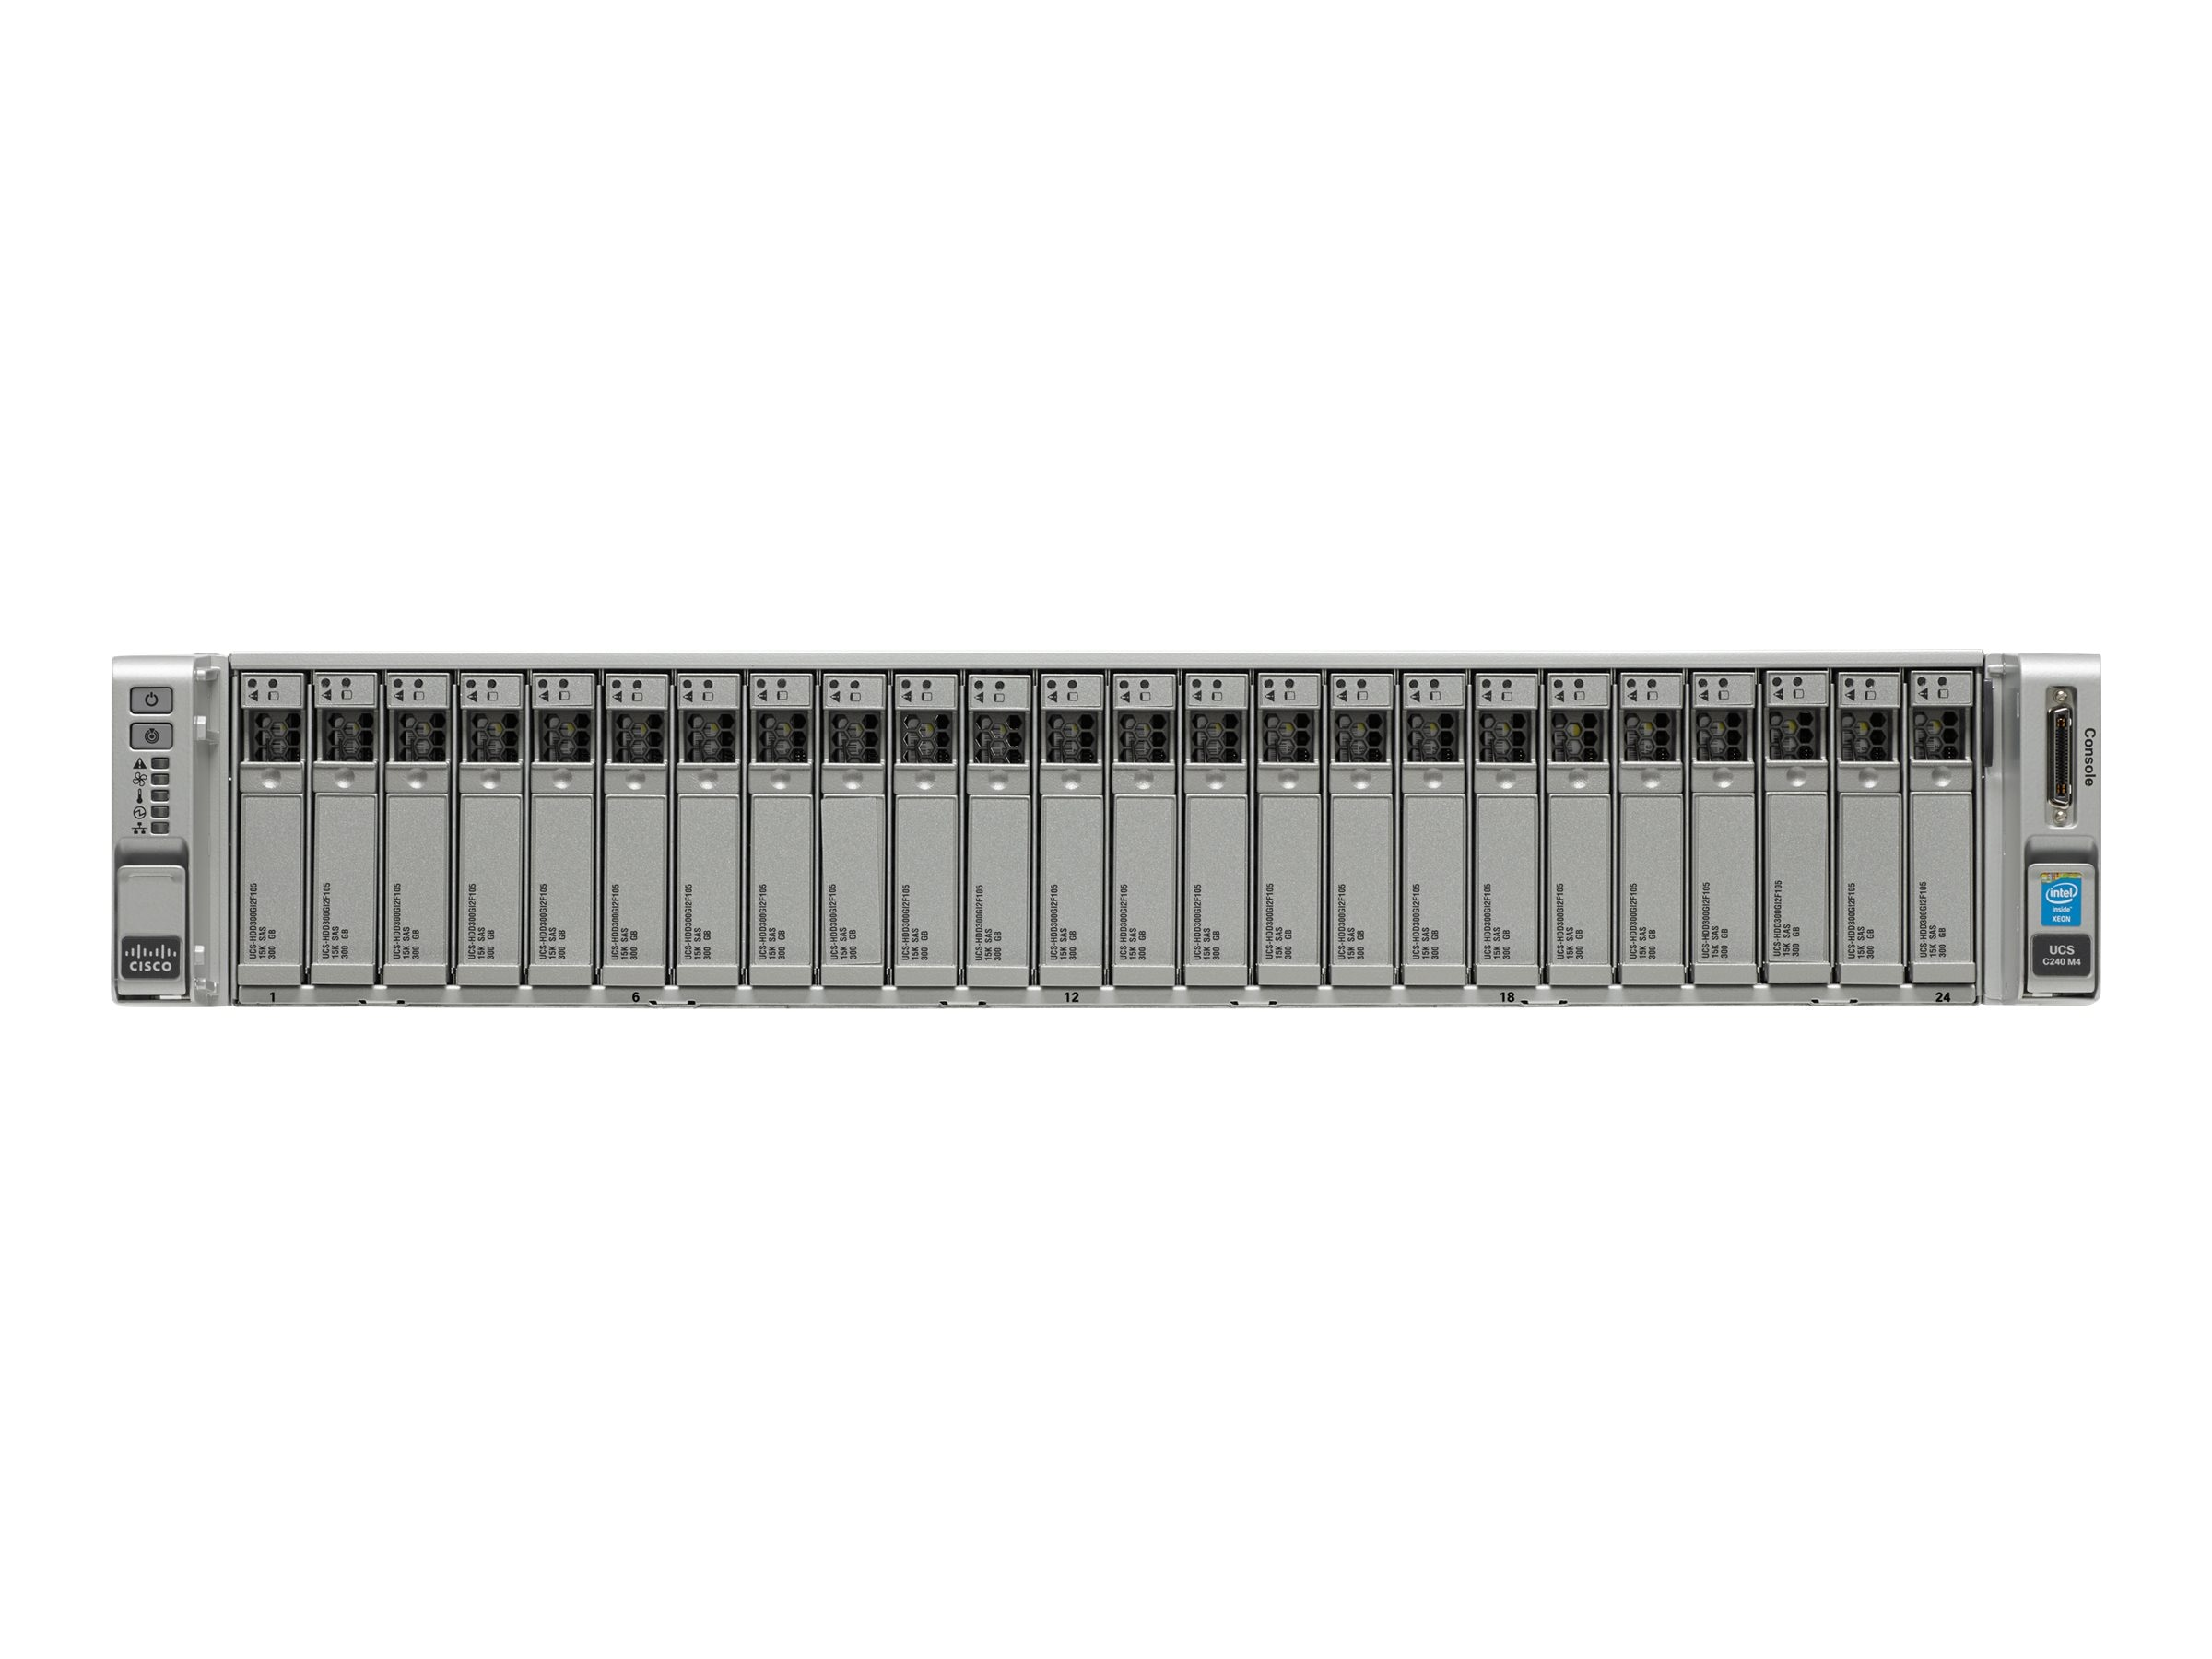 Cisco UCS-SP-C240M4-B-F1 Image 3